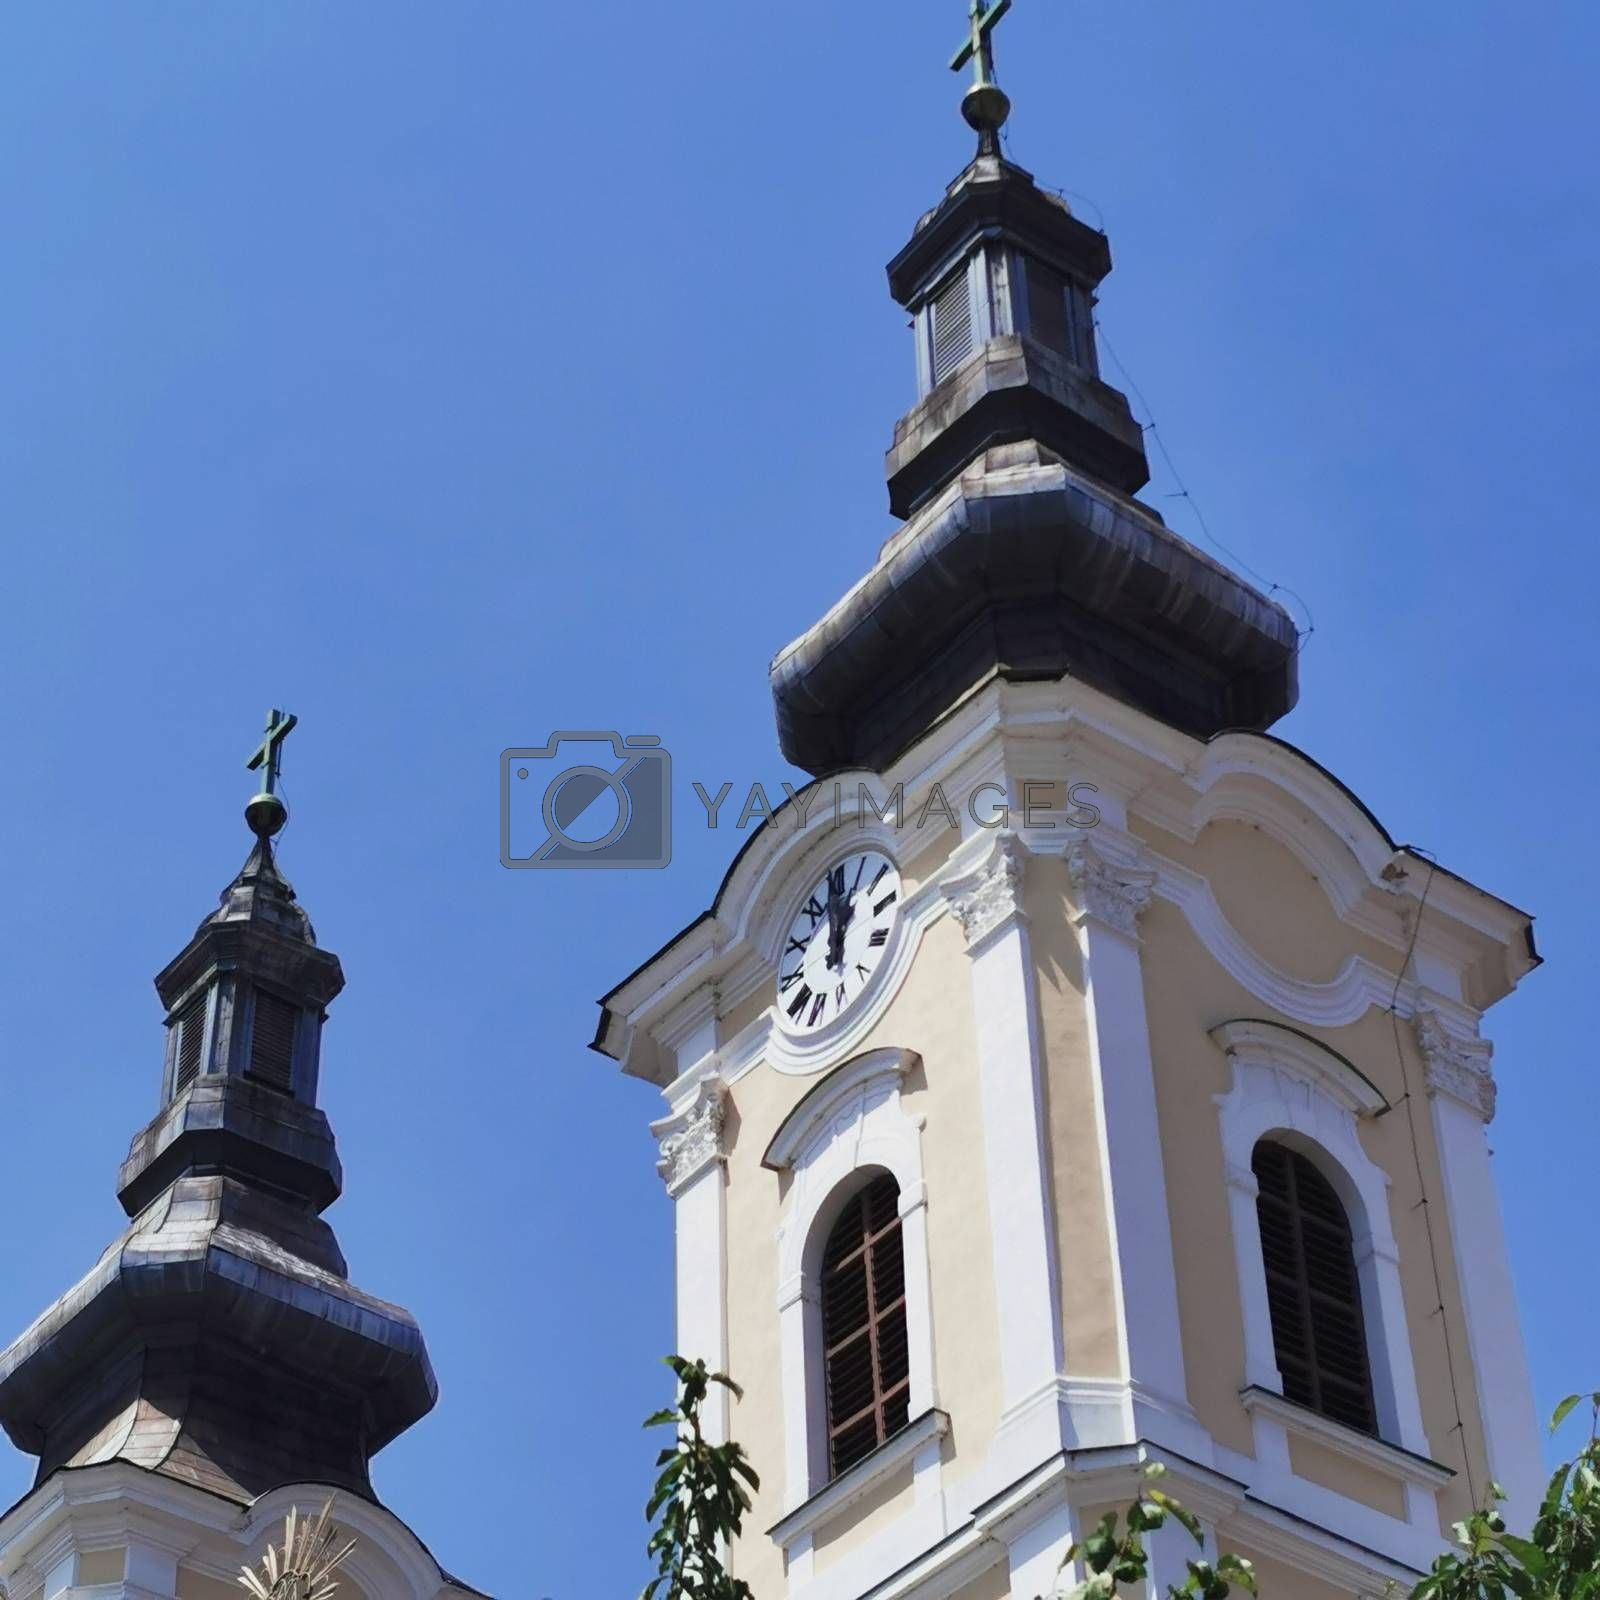 Royalty free image of The church in Miskolc is close up with the beautiful large number plate clock by balage941